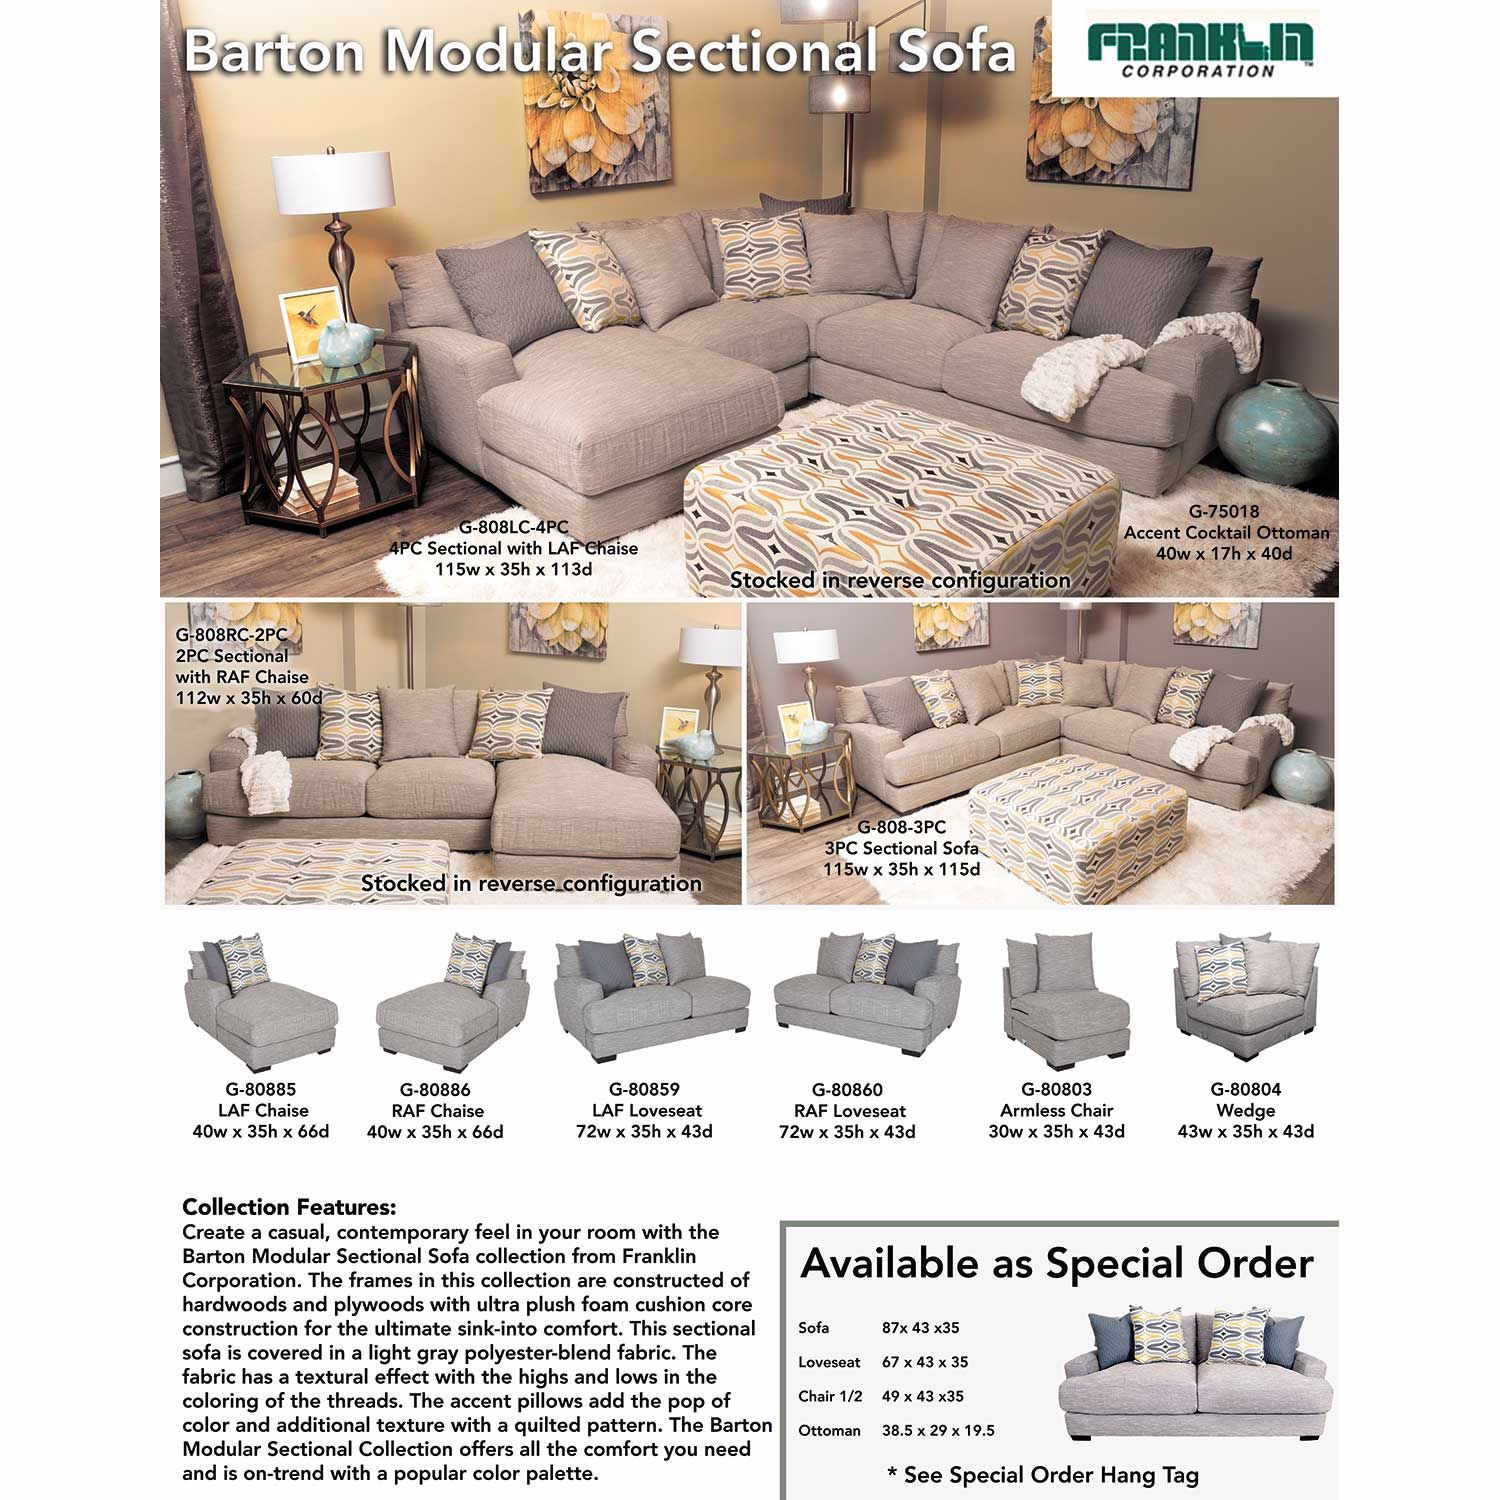 Picture of Barton 2PC Sectional with LAF Chaise